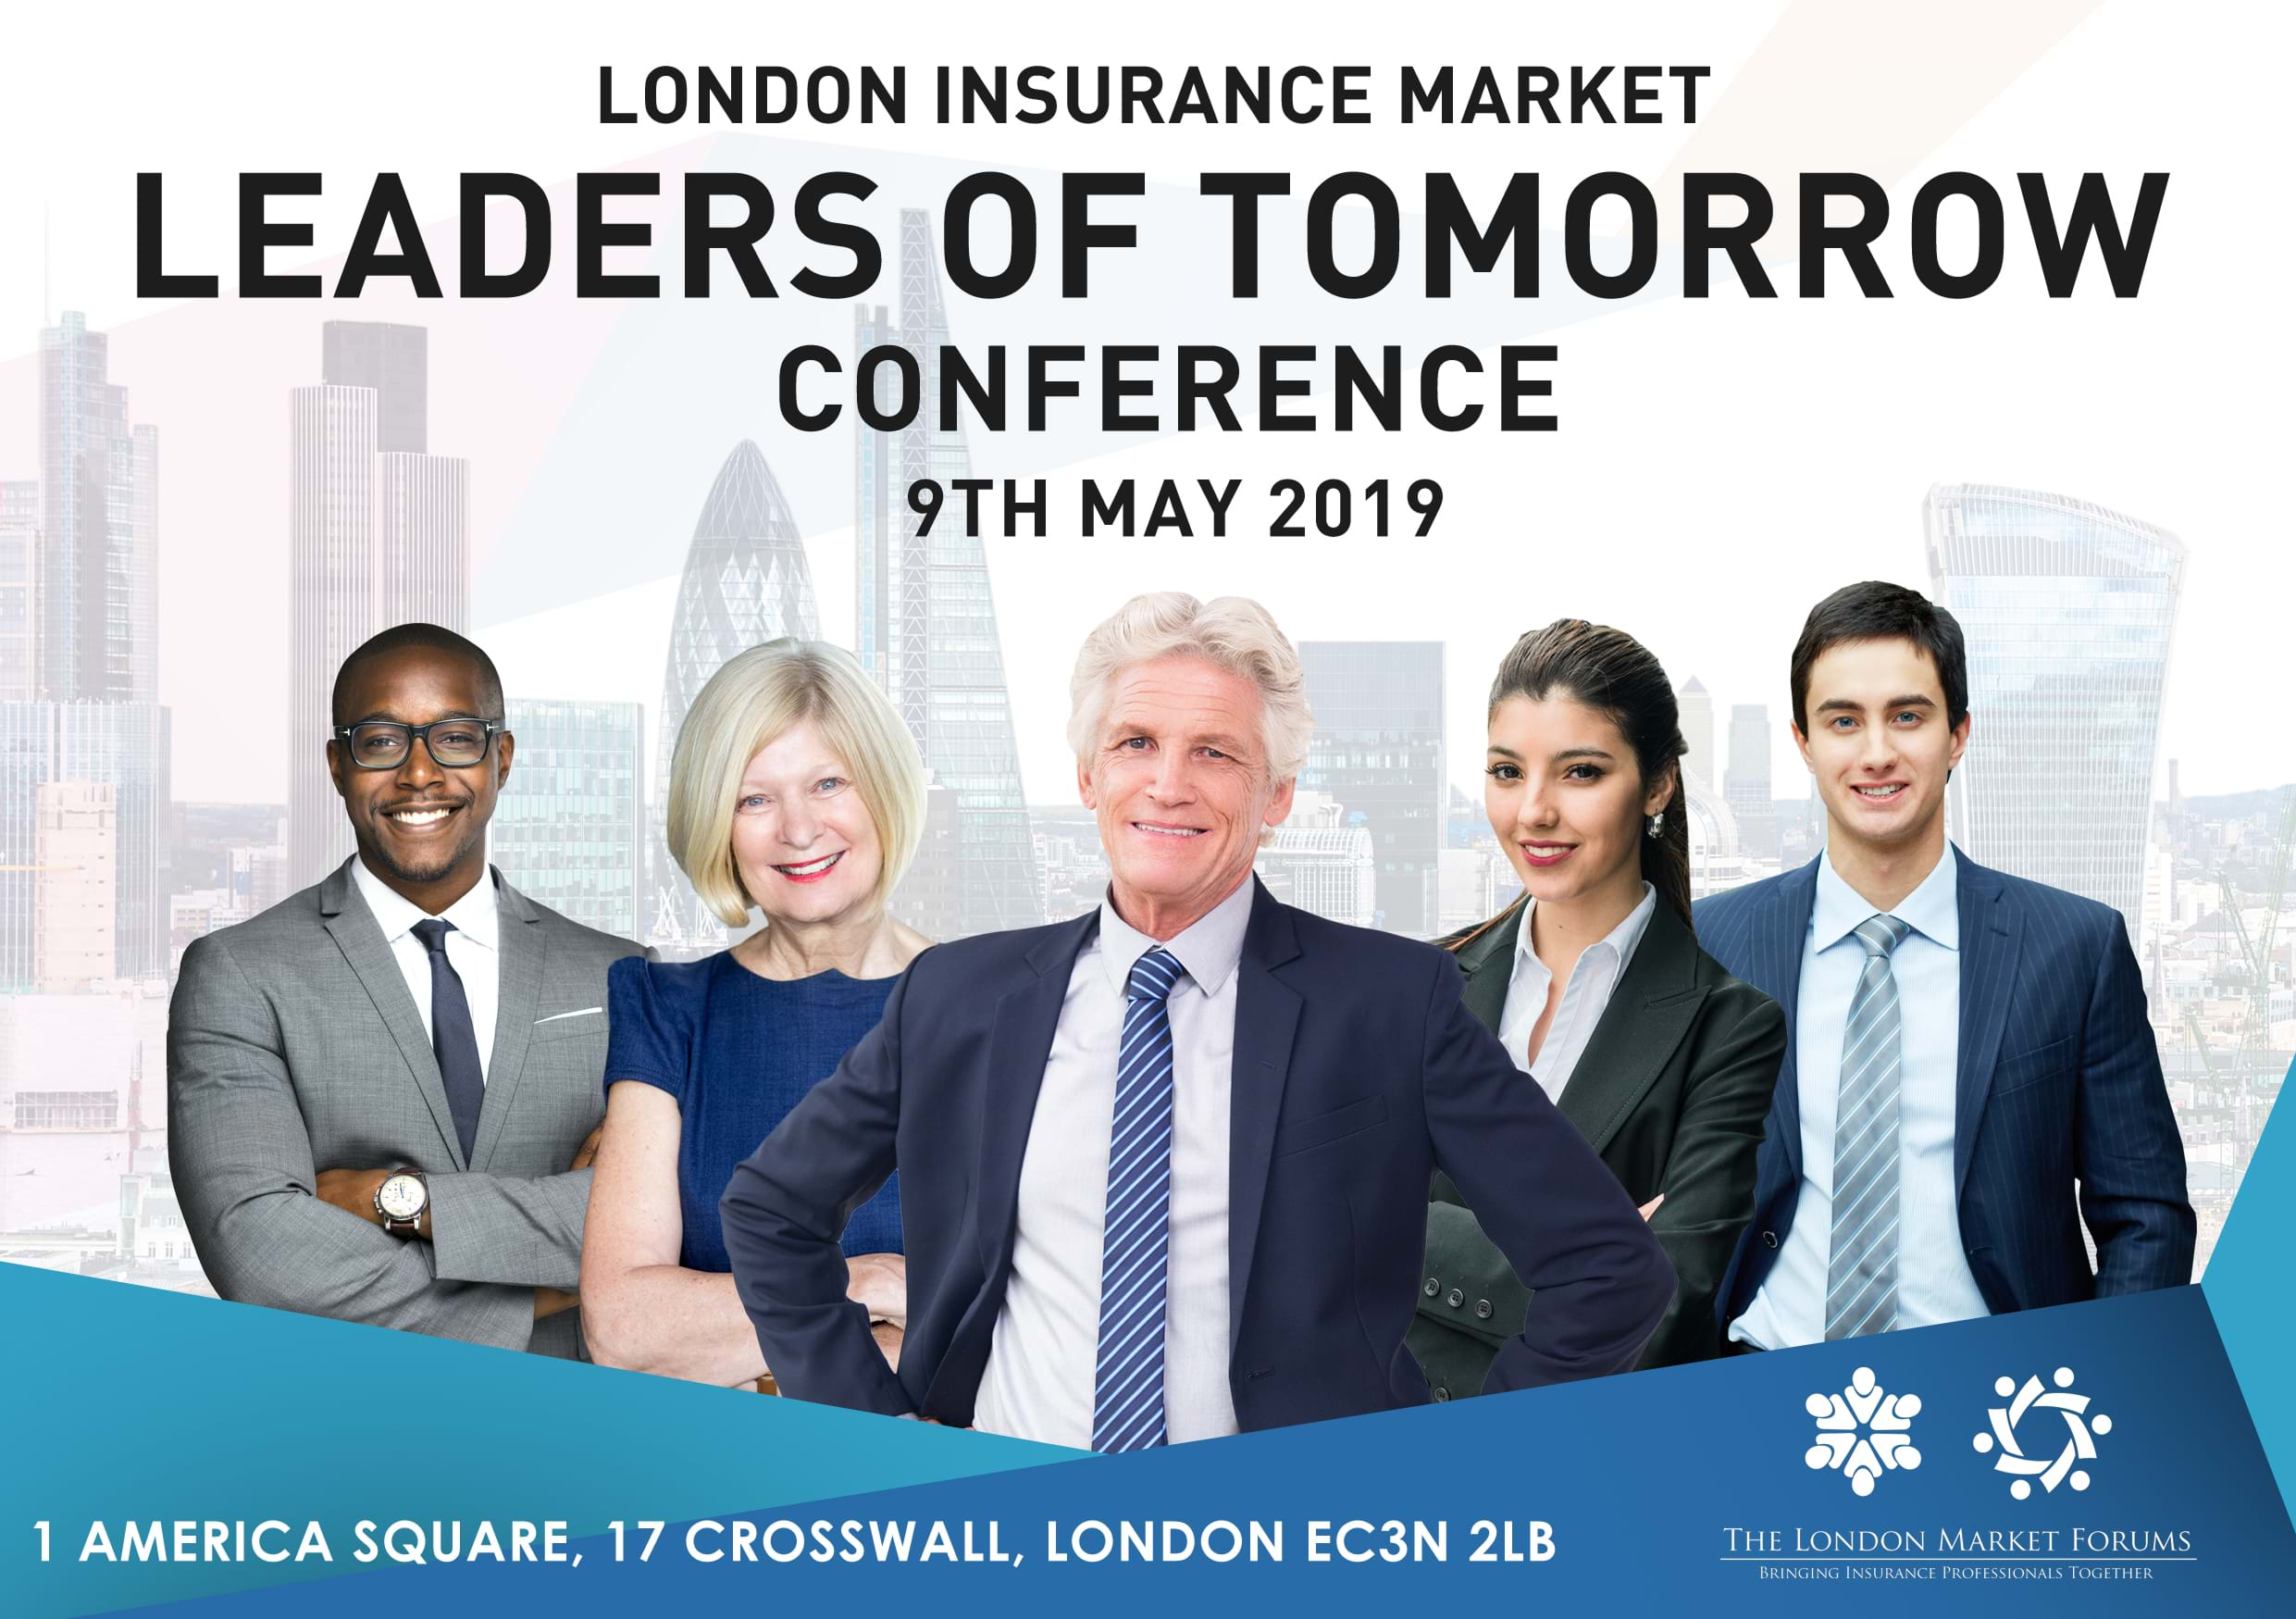 Leaders of Tomorrow Conference - 9th May 2019